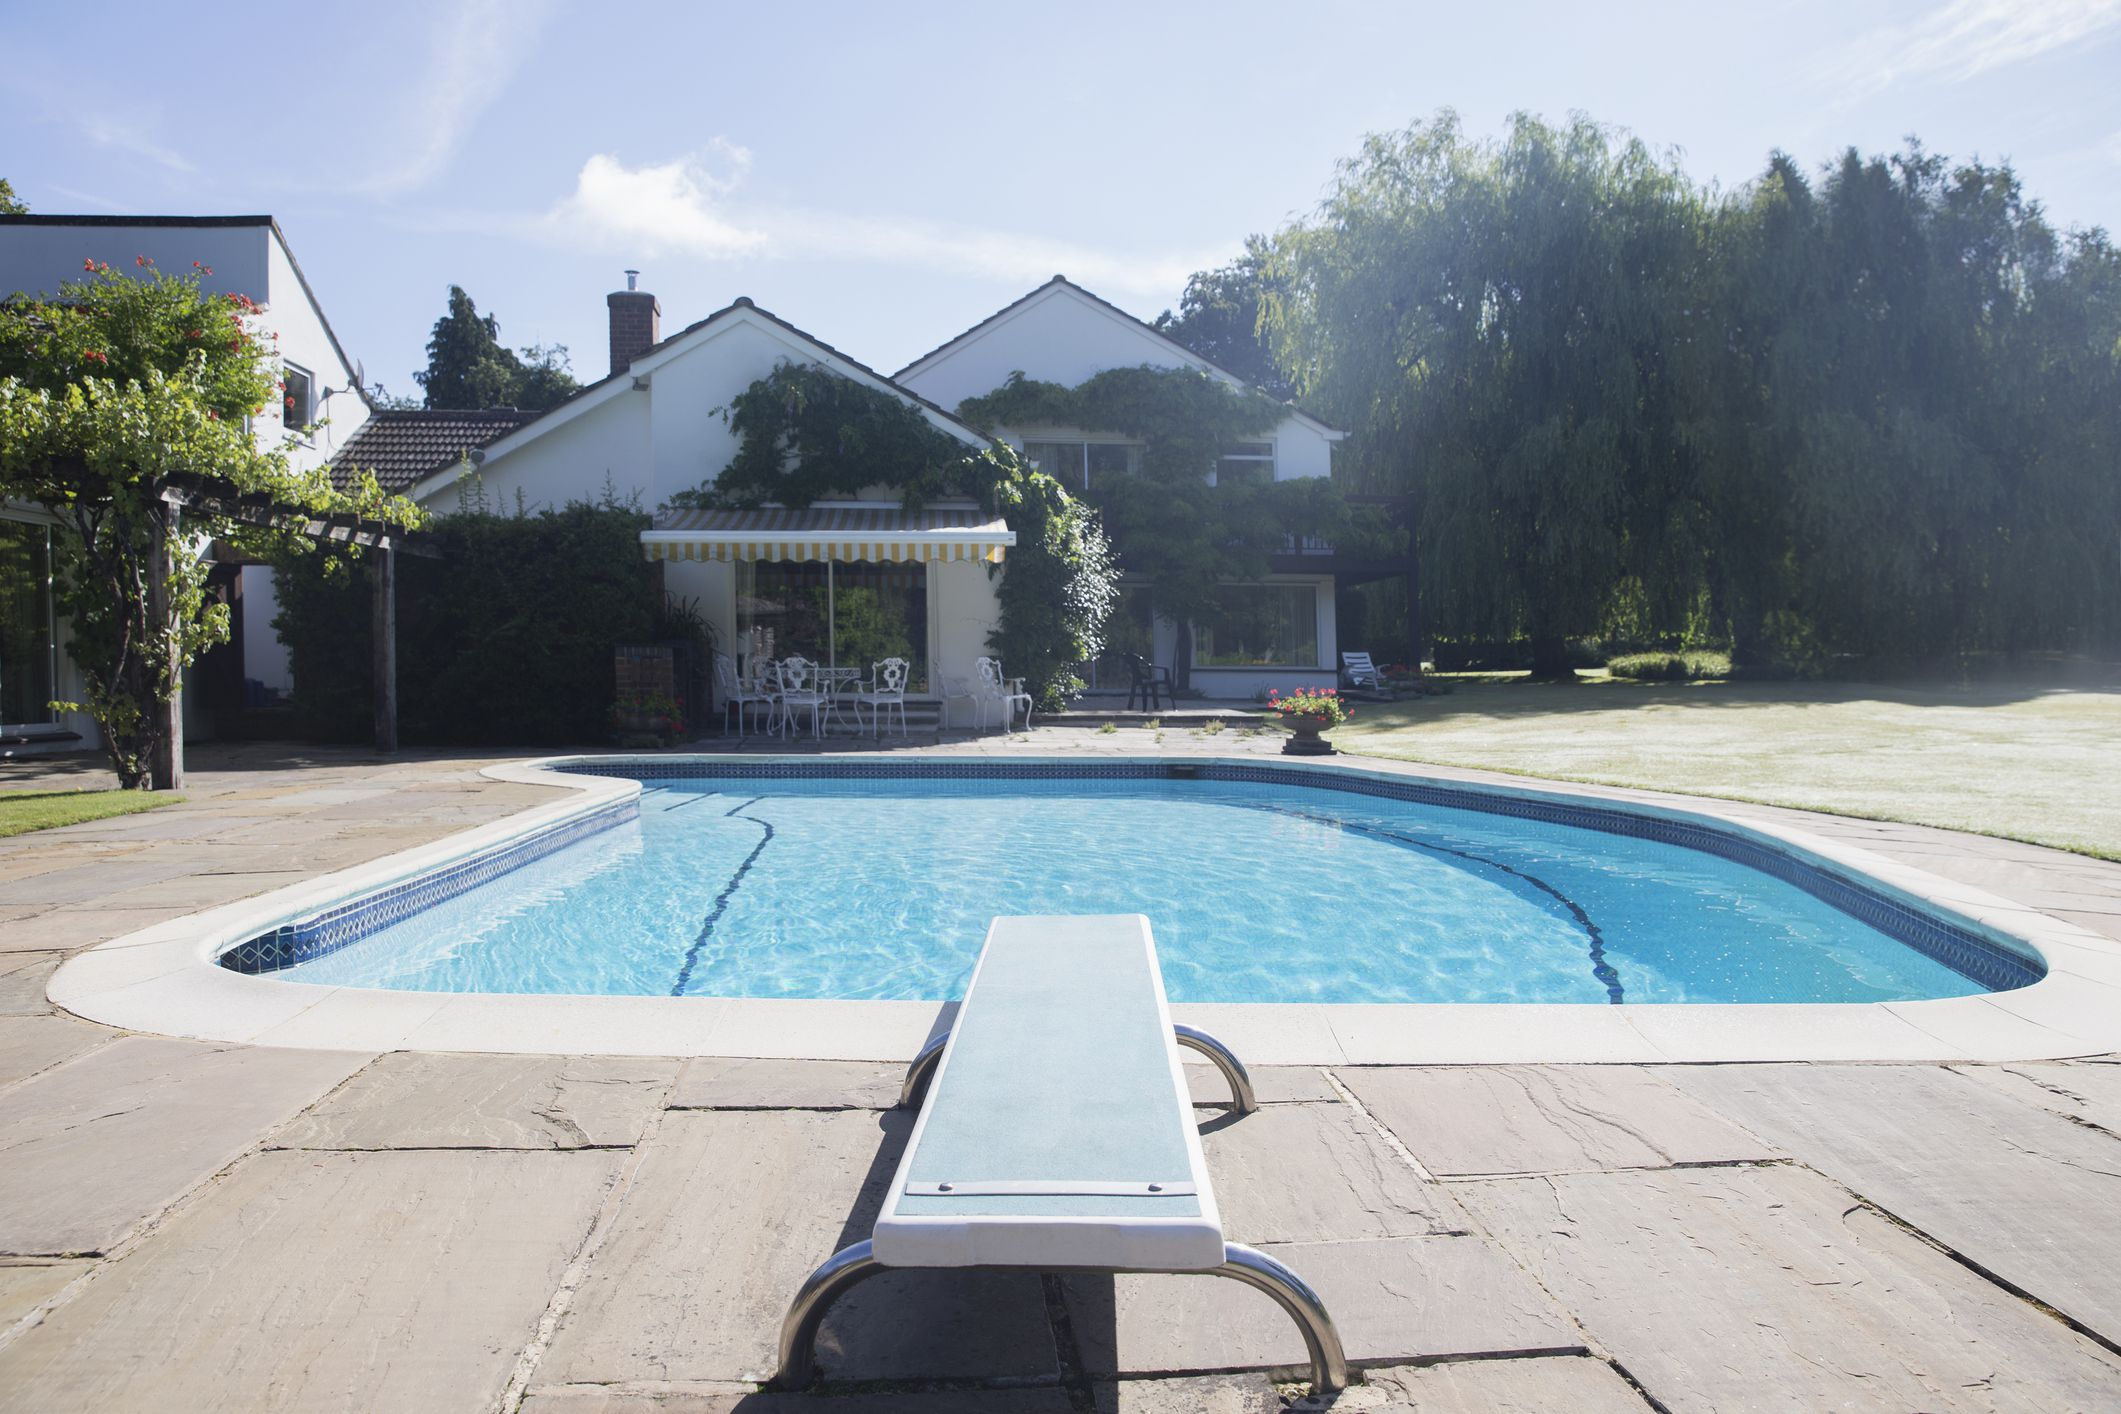 Swimming Pools, Hot Tubs and Electrical Safety